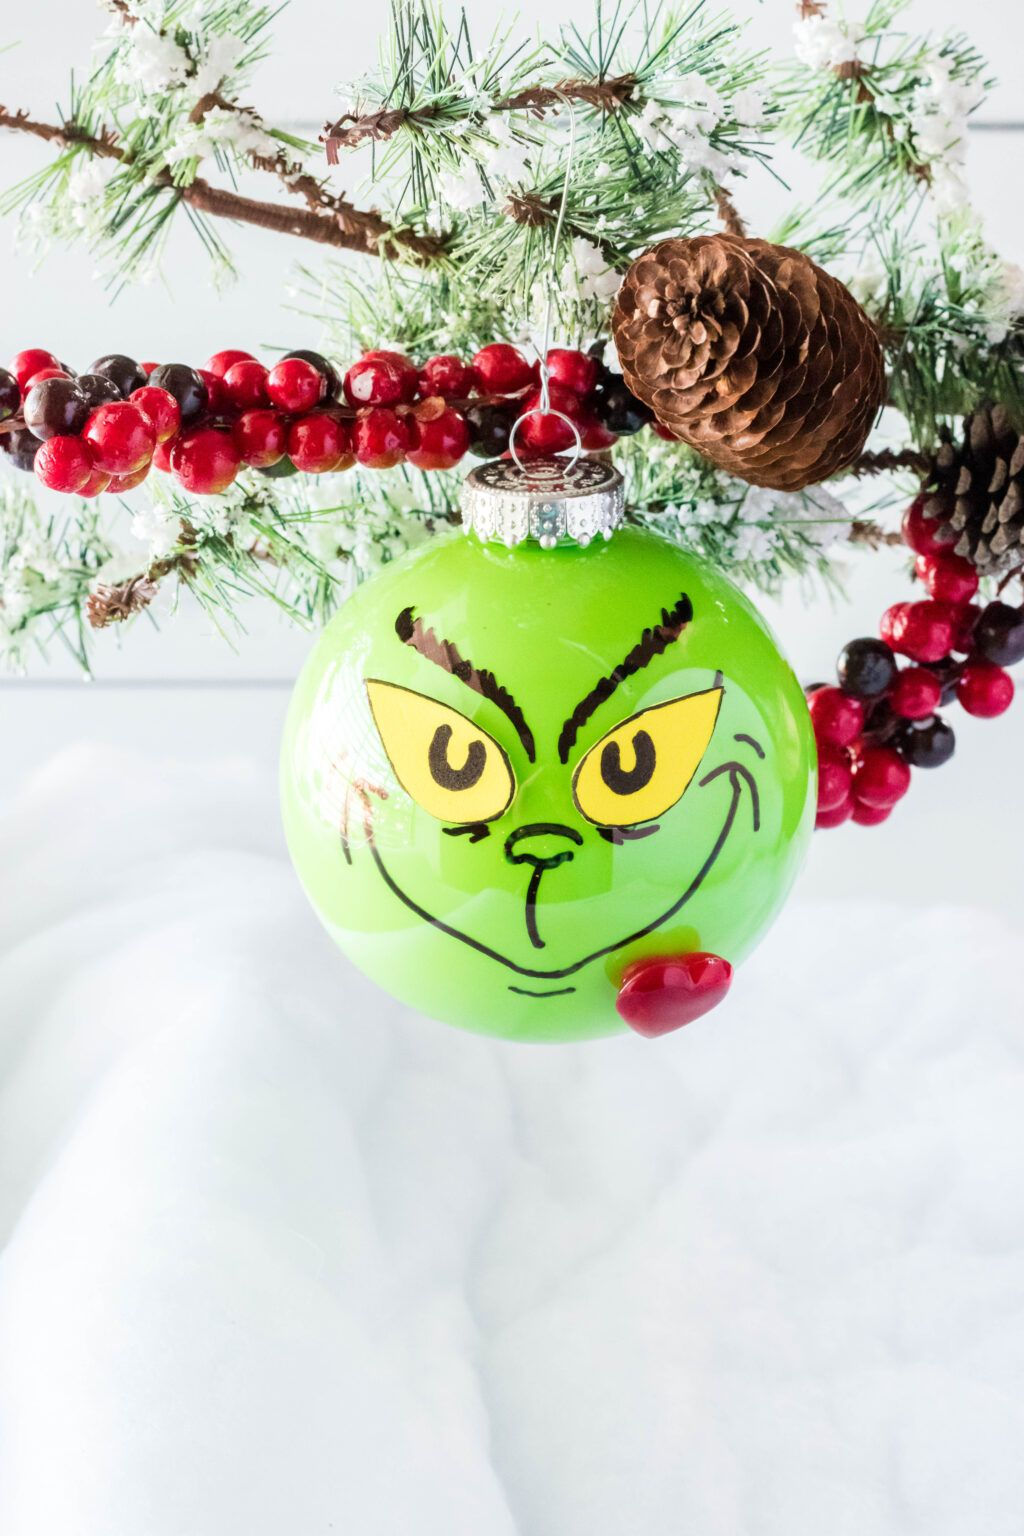 This Diy Grinch Ornament Is Easy To Make And The Perfect Addition To Any Christmas Tree Decor Christmas Crafts For Gifts Christmas Crafts How To Make Ornaments